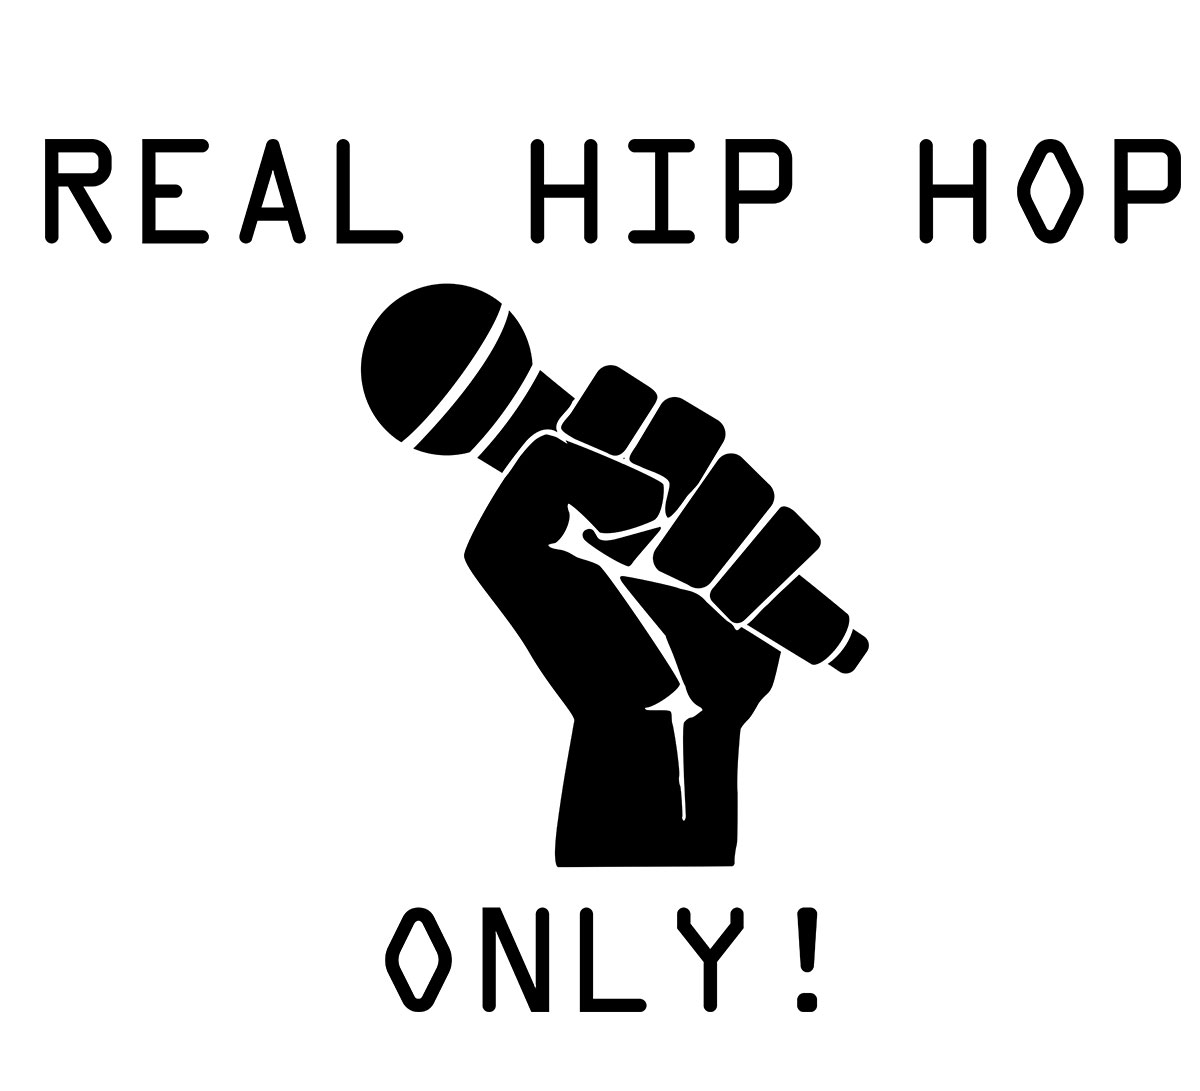 Real Hip Hop Shirt